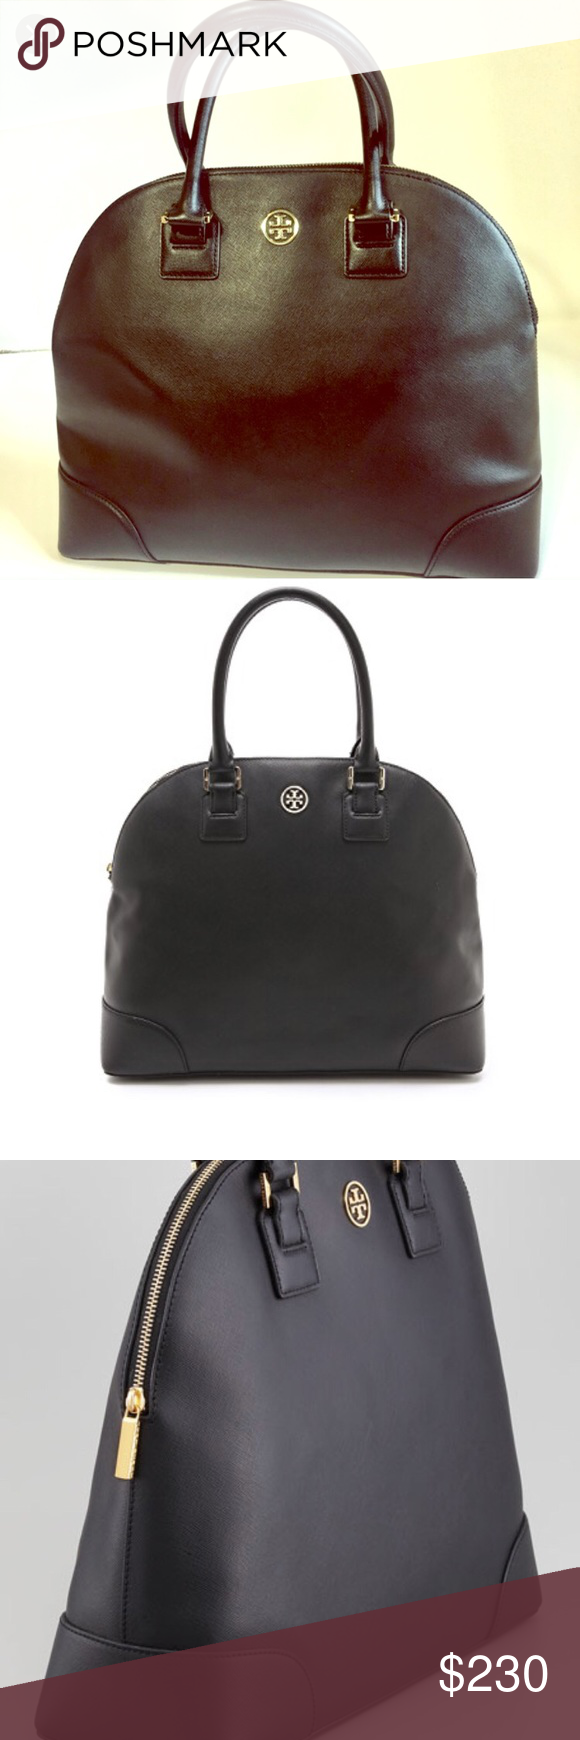 Tory Burch Tote Black Leather Authentic Large Robinson Dome Zipper Broken But Can Be Repaired Bags Totes